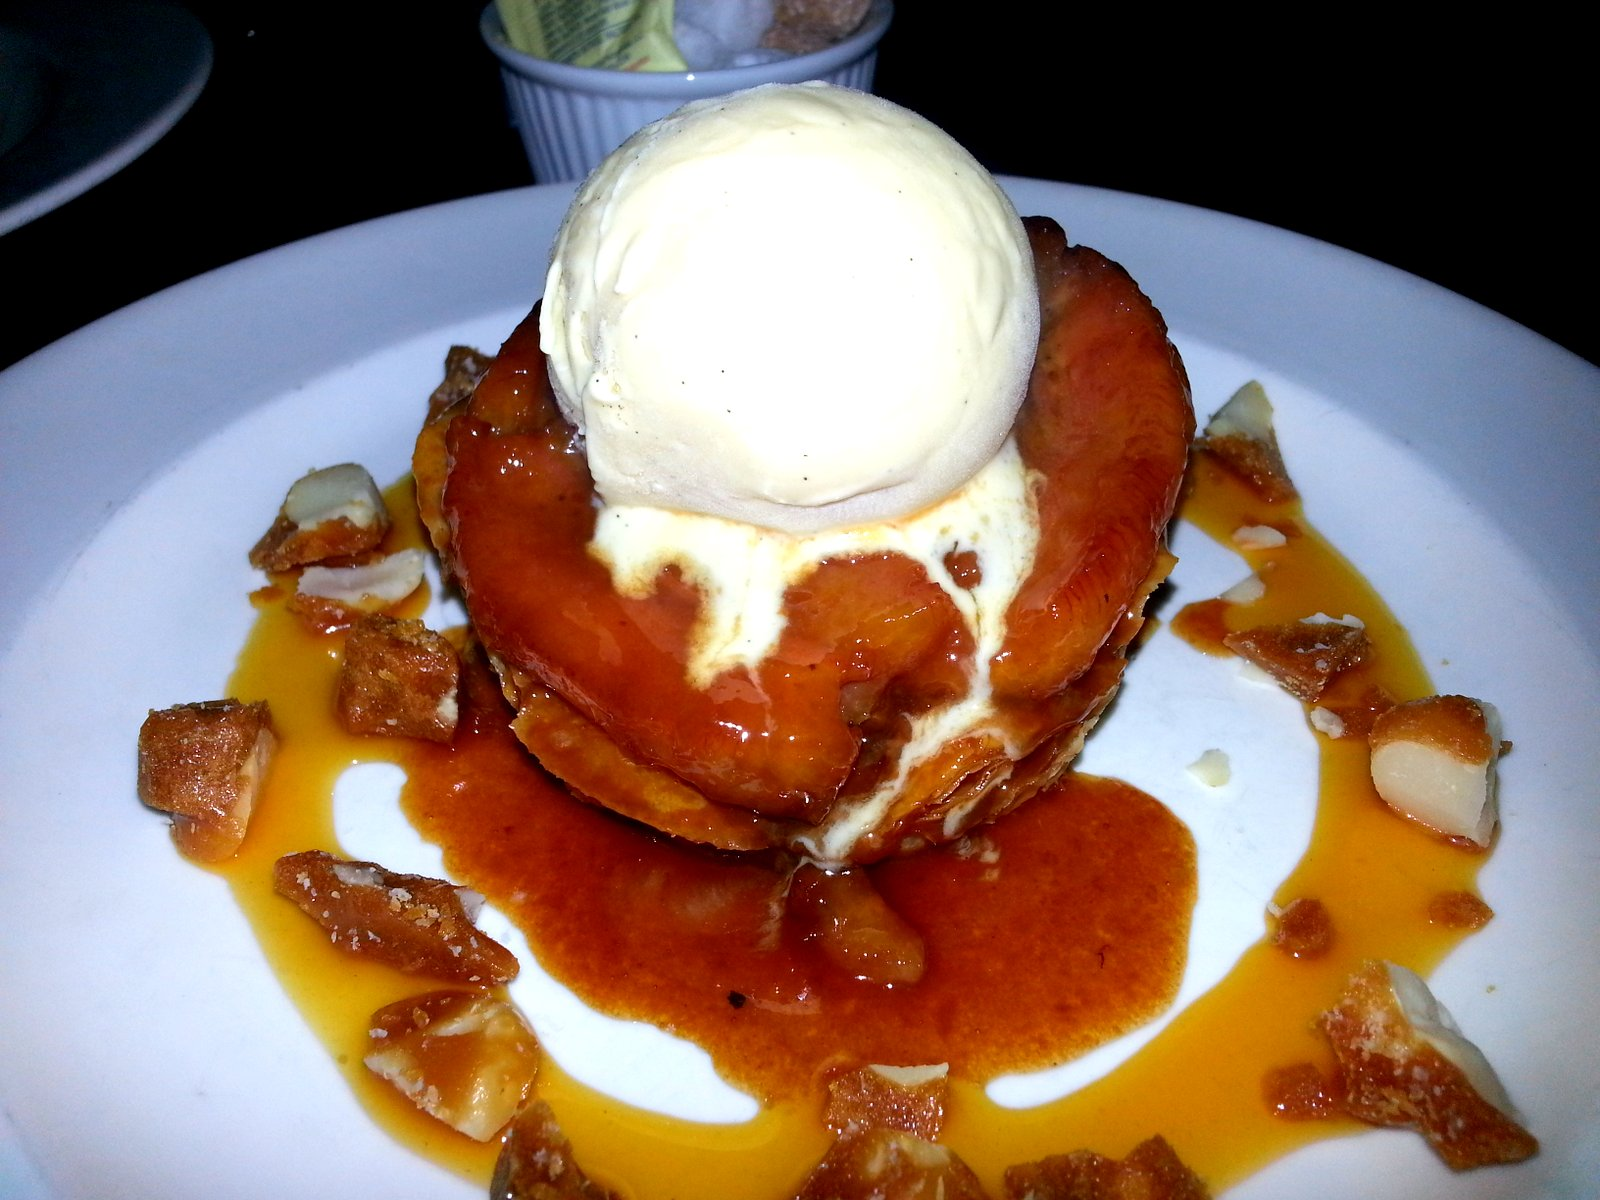 Warm Banana Tart Tatin: Passion Fruit Caramel, Vanilla Ice Cream & Macadamia Nut Brittle